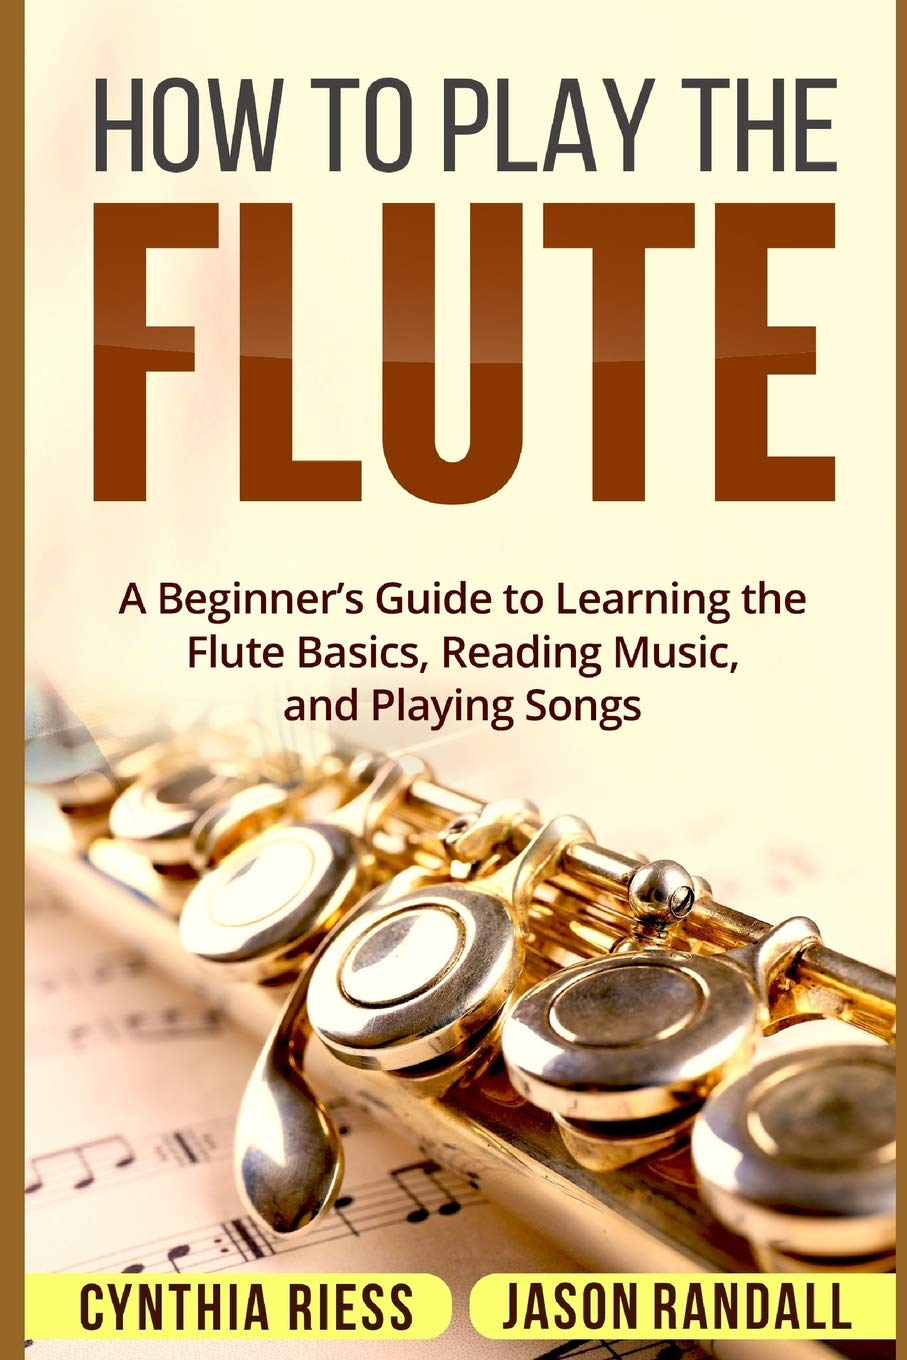 Amazon Com How To Play The Flute A Beginner S Guide To Learning The Flute Basics Reading Music And Playing Songs 9781718044883 Riess Cynthia Randall Jason Books